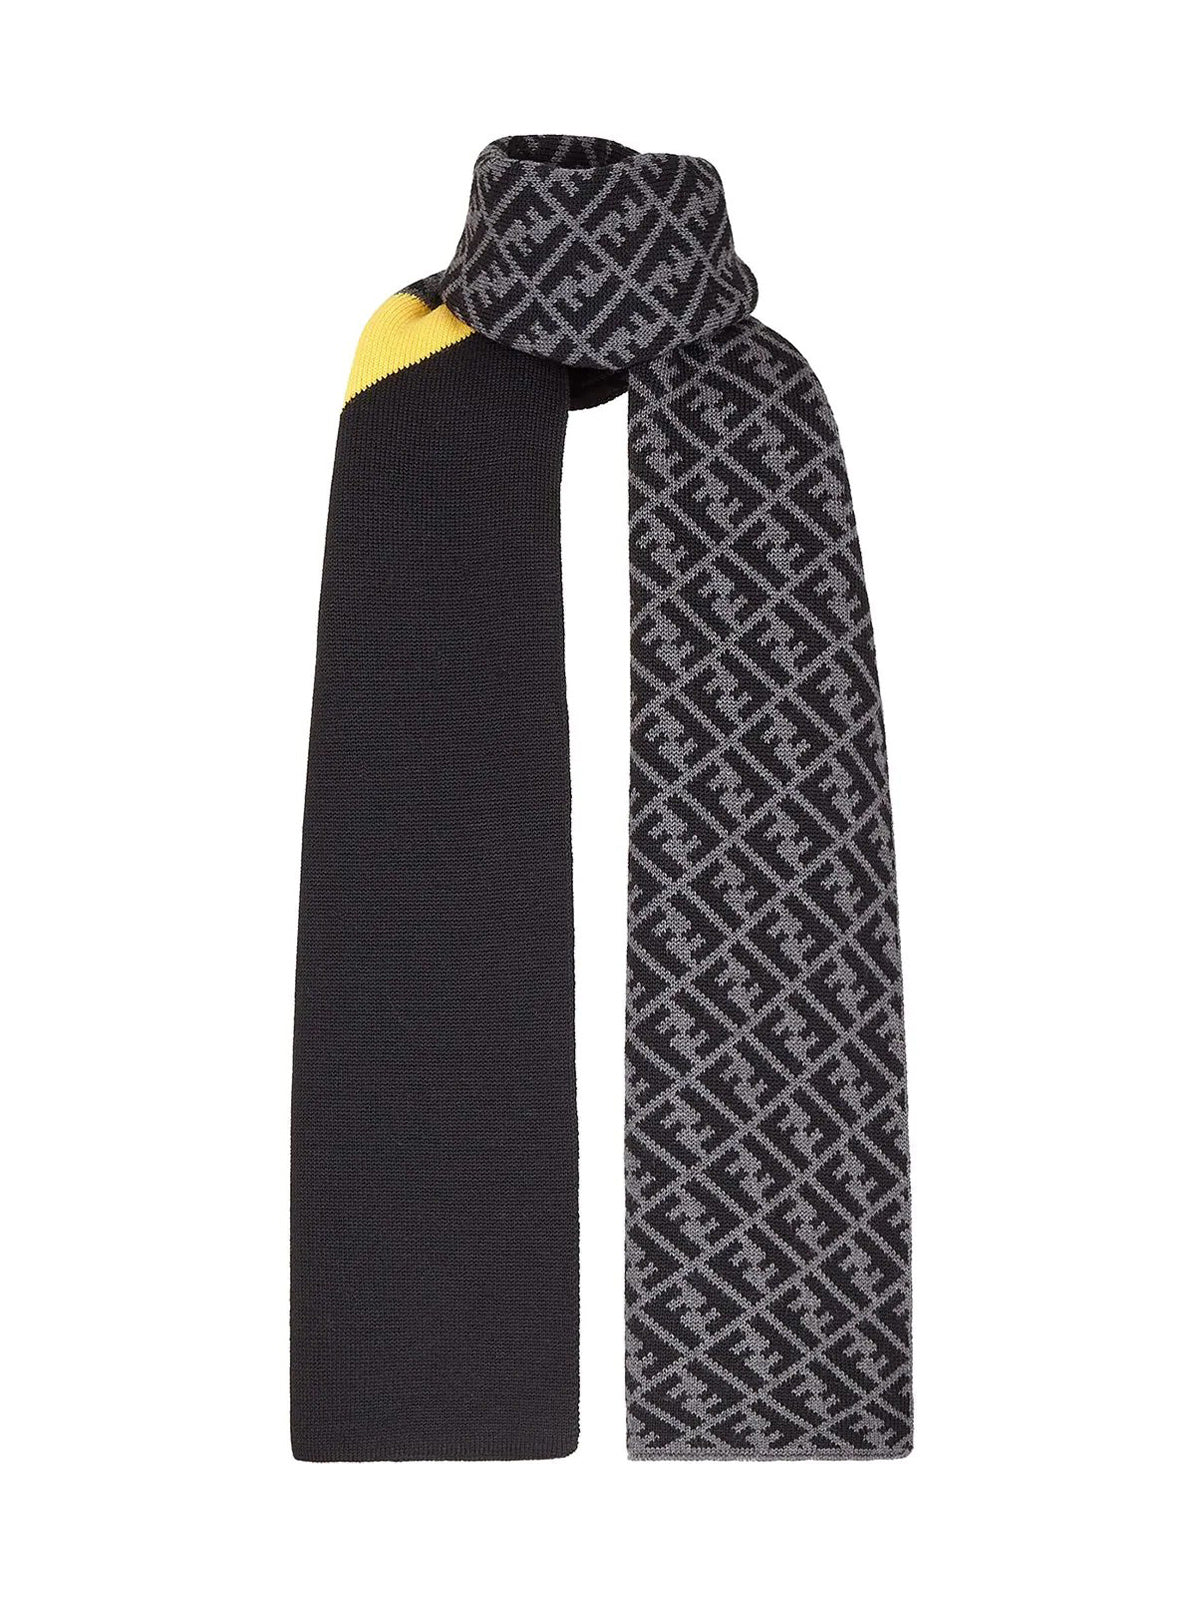 panelled FF print scarf